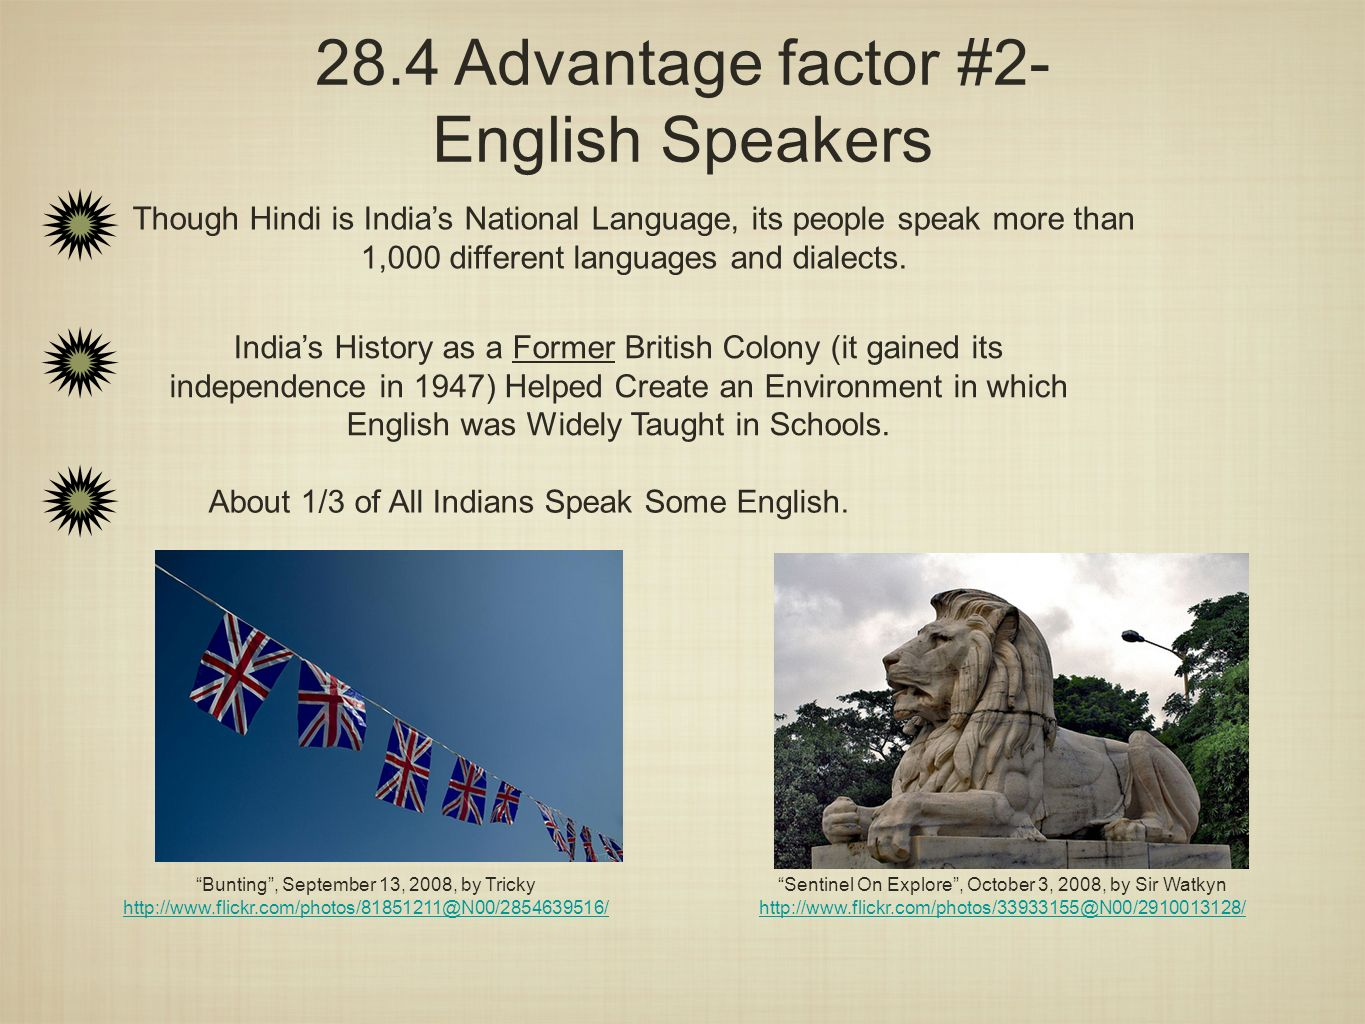 28.4 Advantage factor #2- English Speakers